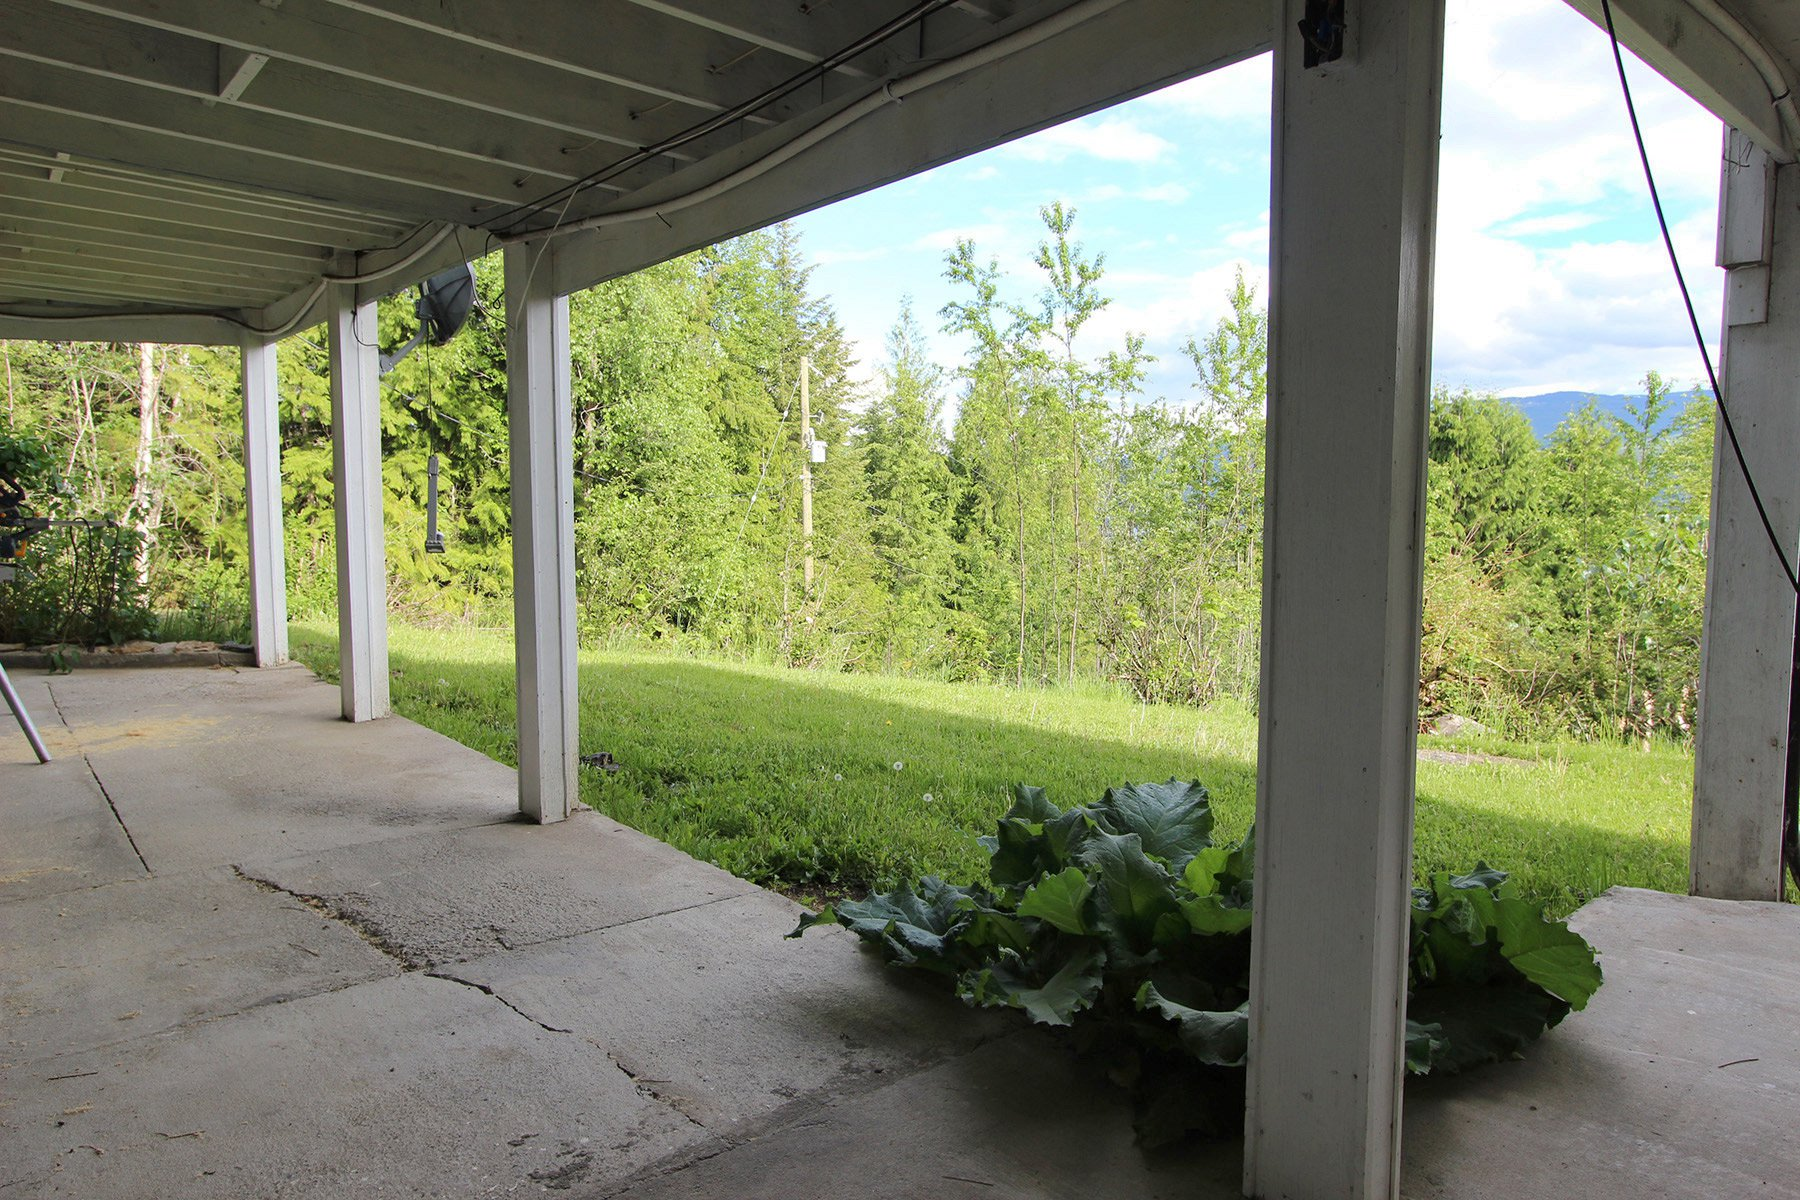 Photo 56: Photos: 6831 Magna Bay Drive in Magna Bay: House with Acreage for sale : MLS®# 10205520